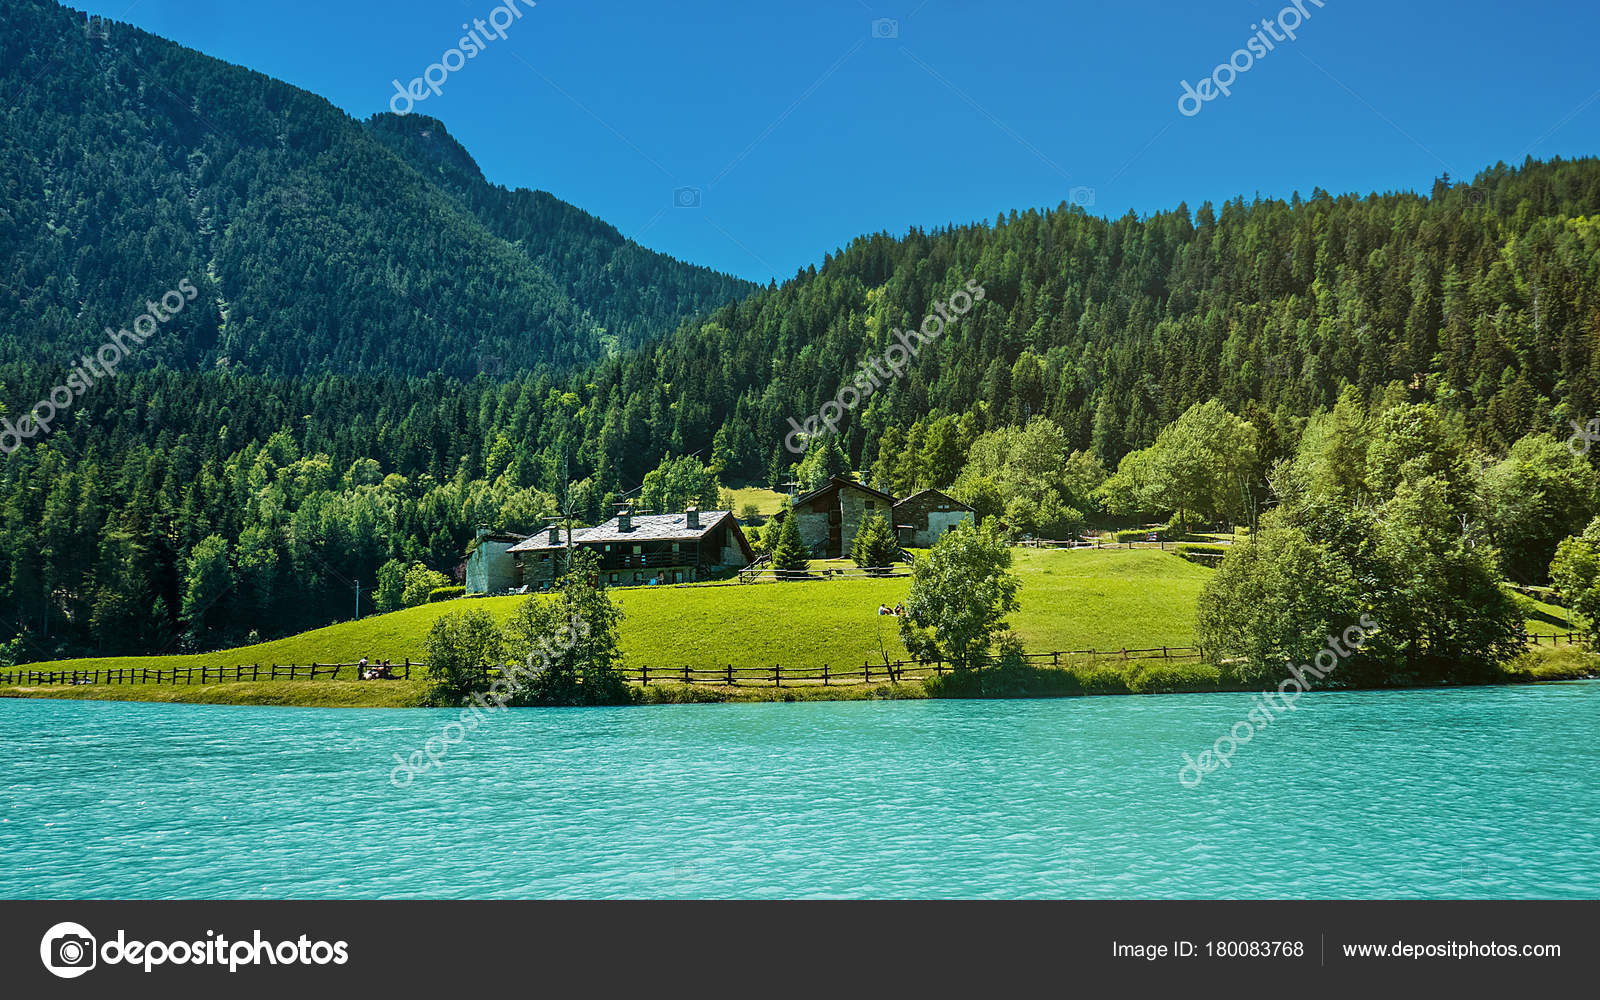 Pine Woods Cottages And Beautiful Blue Lake In North Italy Mountains Stock Photo